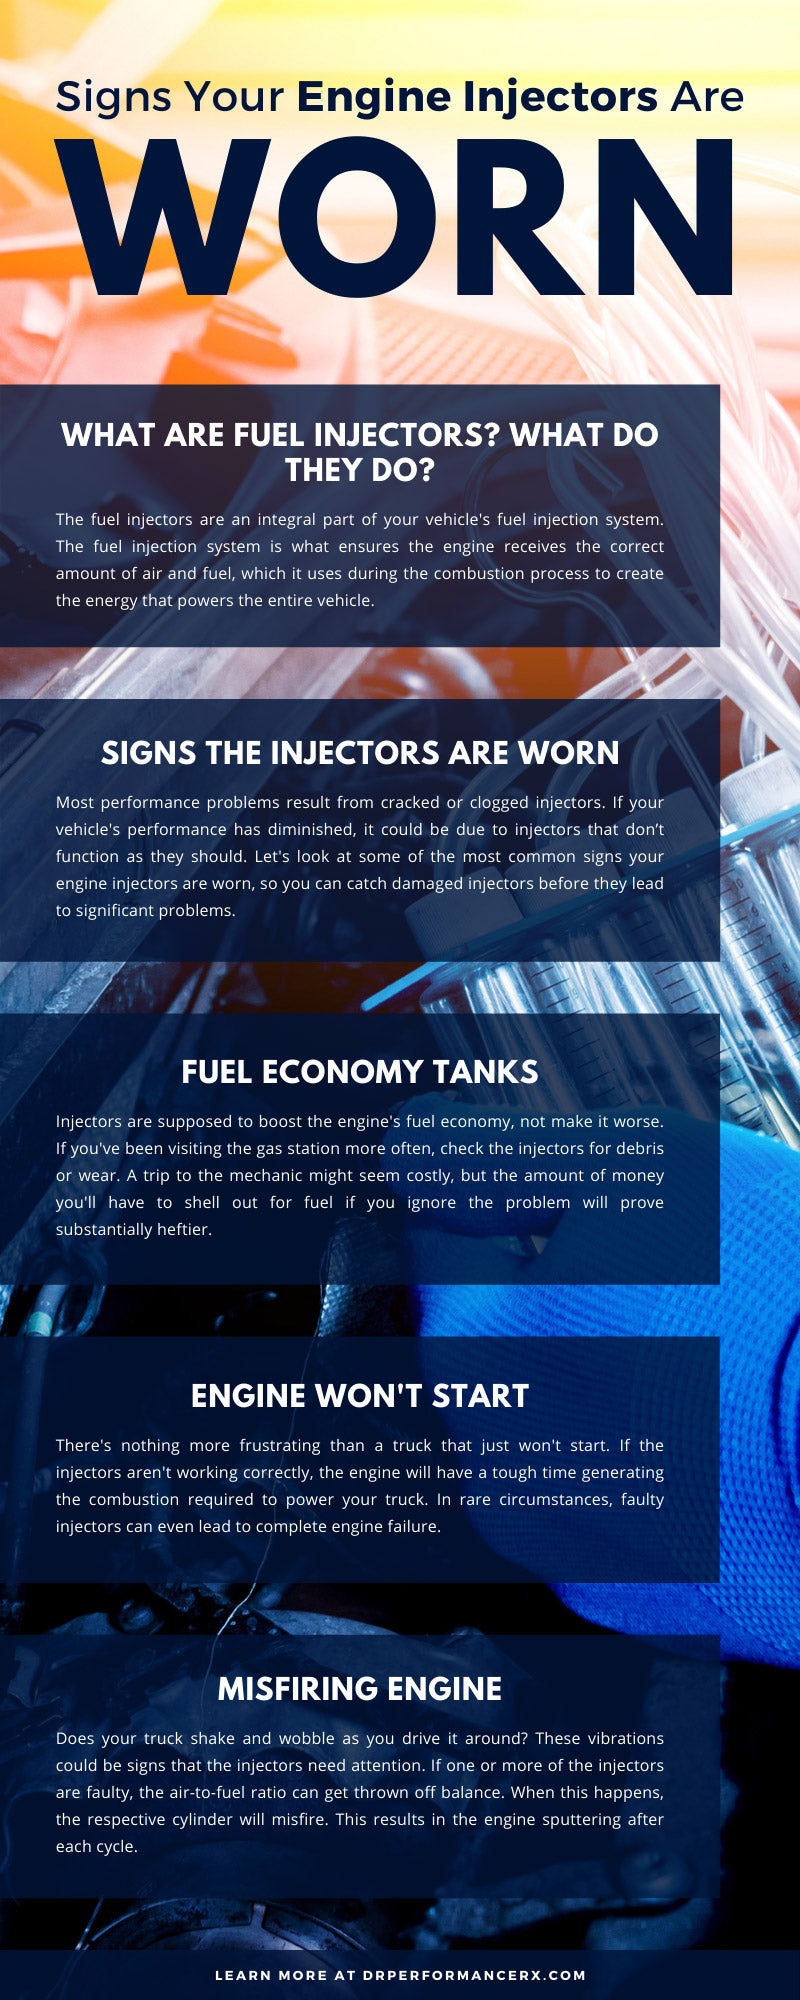 Signs Your Engine Injectors Are Worn